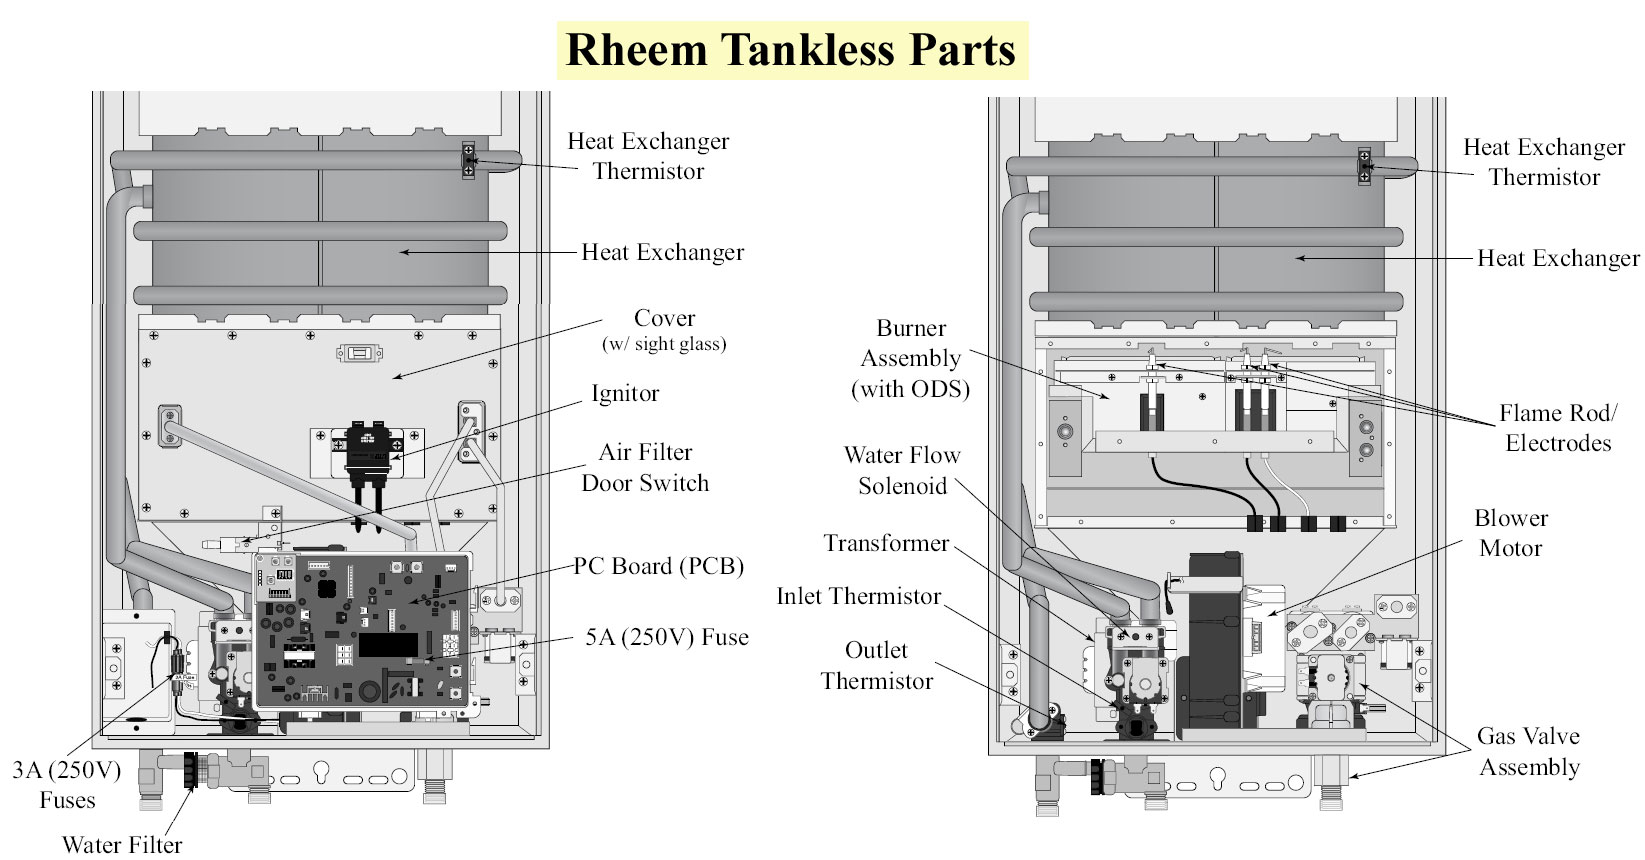 Rheem Tankless Parts 860 how to wire water heater thermostat readingrat net rheem rte 18 wiring diagram at eliteediting.co